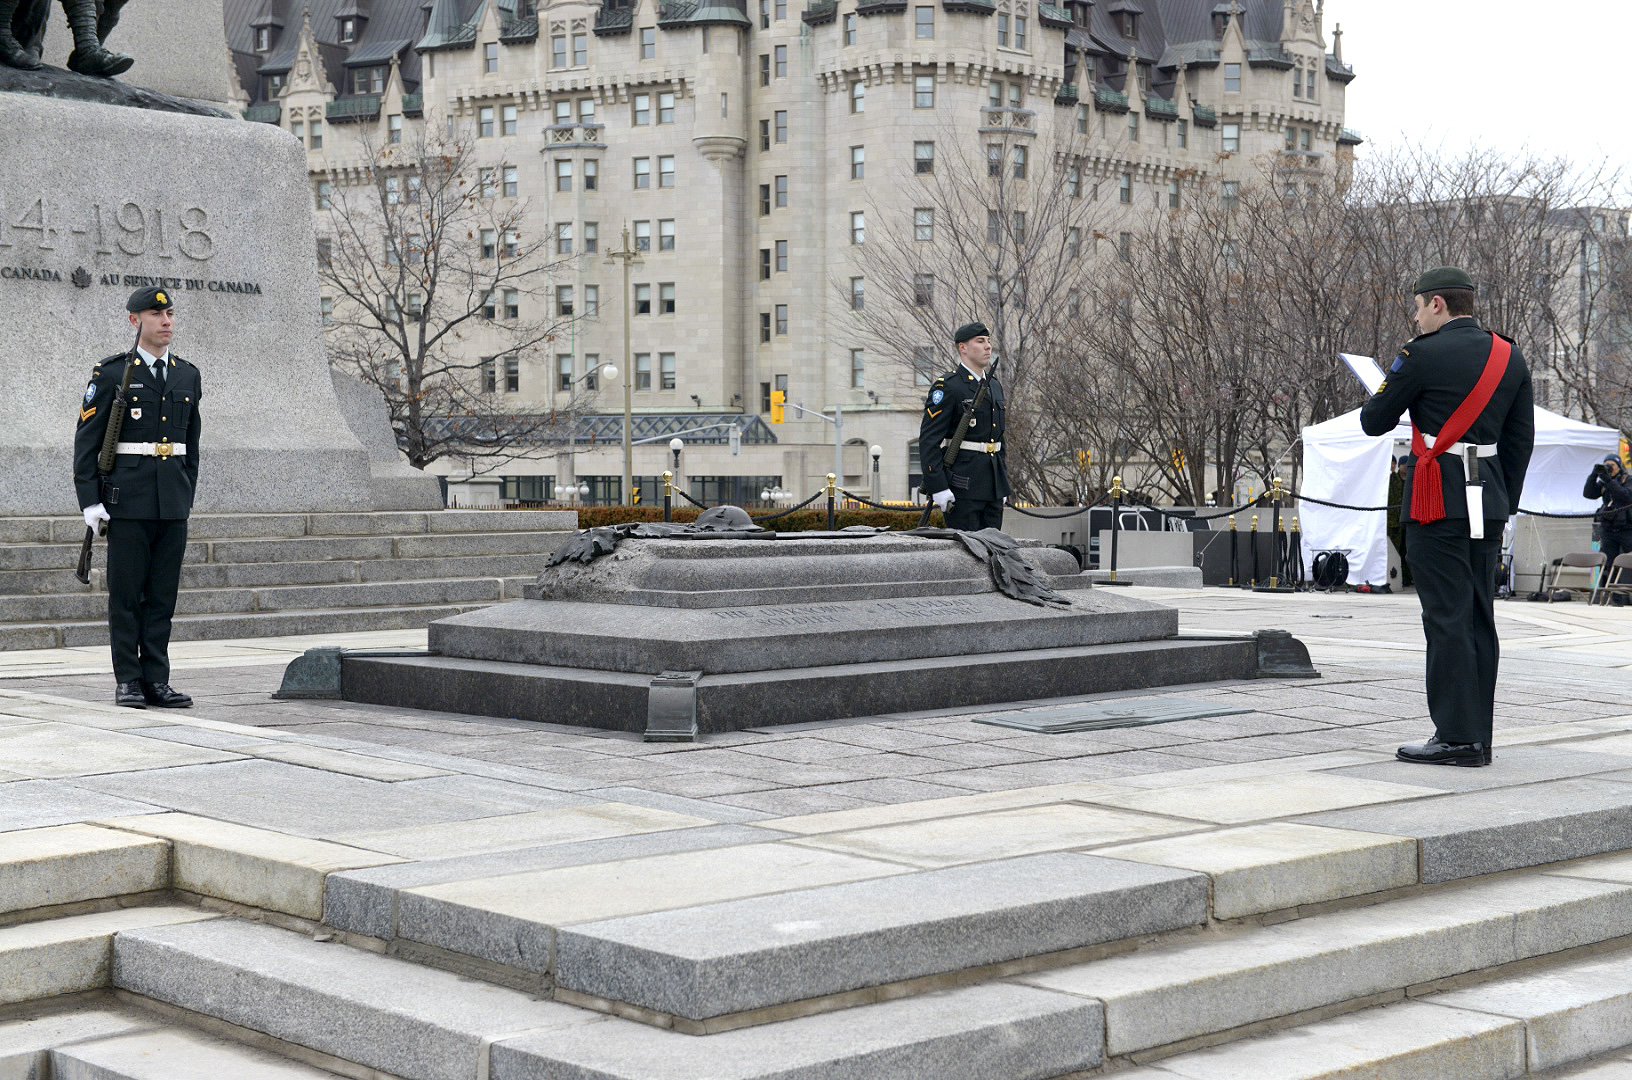 Contingent Commander Sgt Frédéric Manny, Les Fusiliers Mont-Royal, Montréal, Québec, reads out the sentry duties to the soldiers of the National Sentry Program at the Tomb of the Unknown Soldier during the launch of the 2015 season. (Photo: Sgt Dan Shouinard, Directorate of Army Public Affairs)